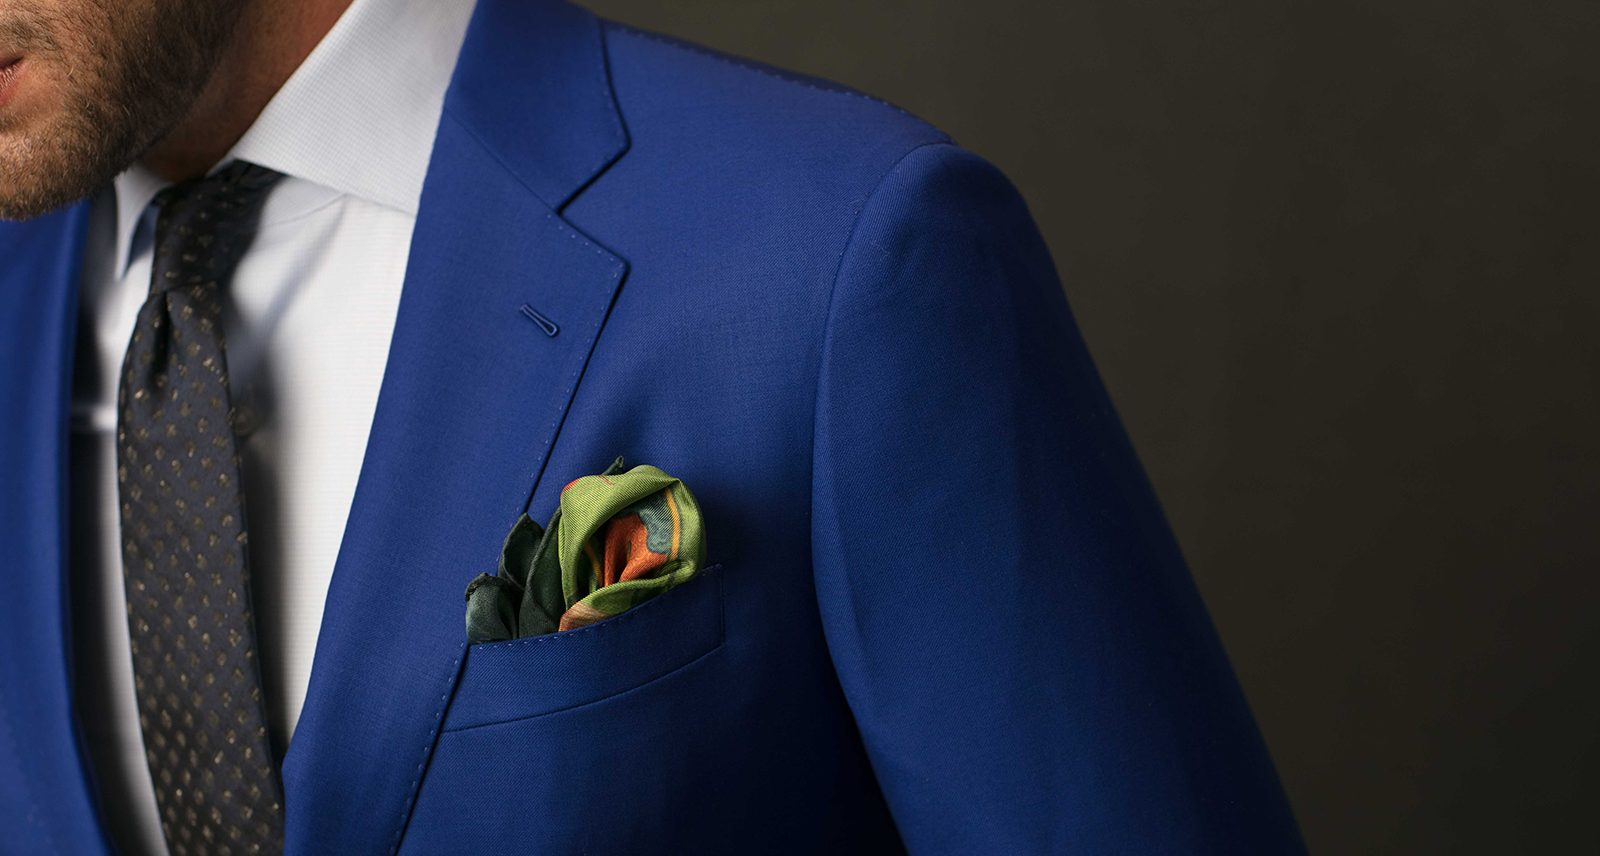 The Quarterly Is the Subscription Service Every Sartorially-Minded Man Needs